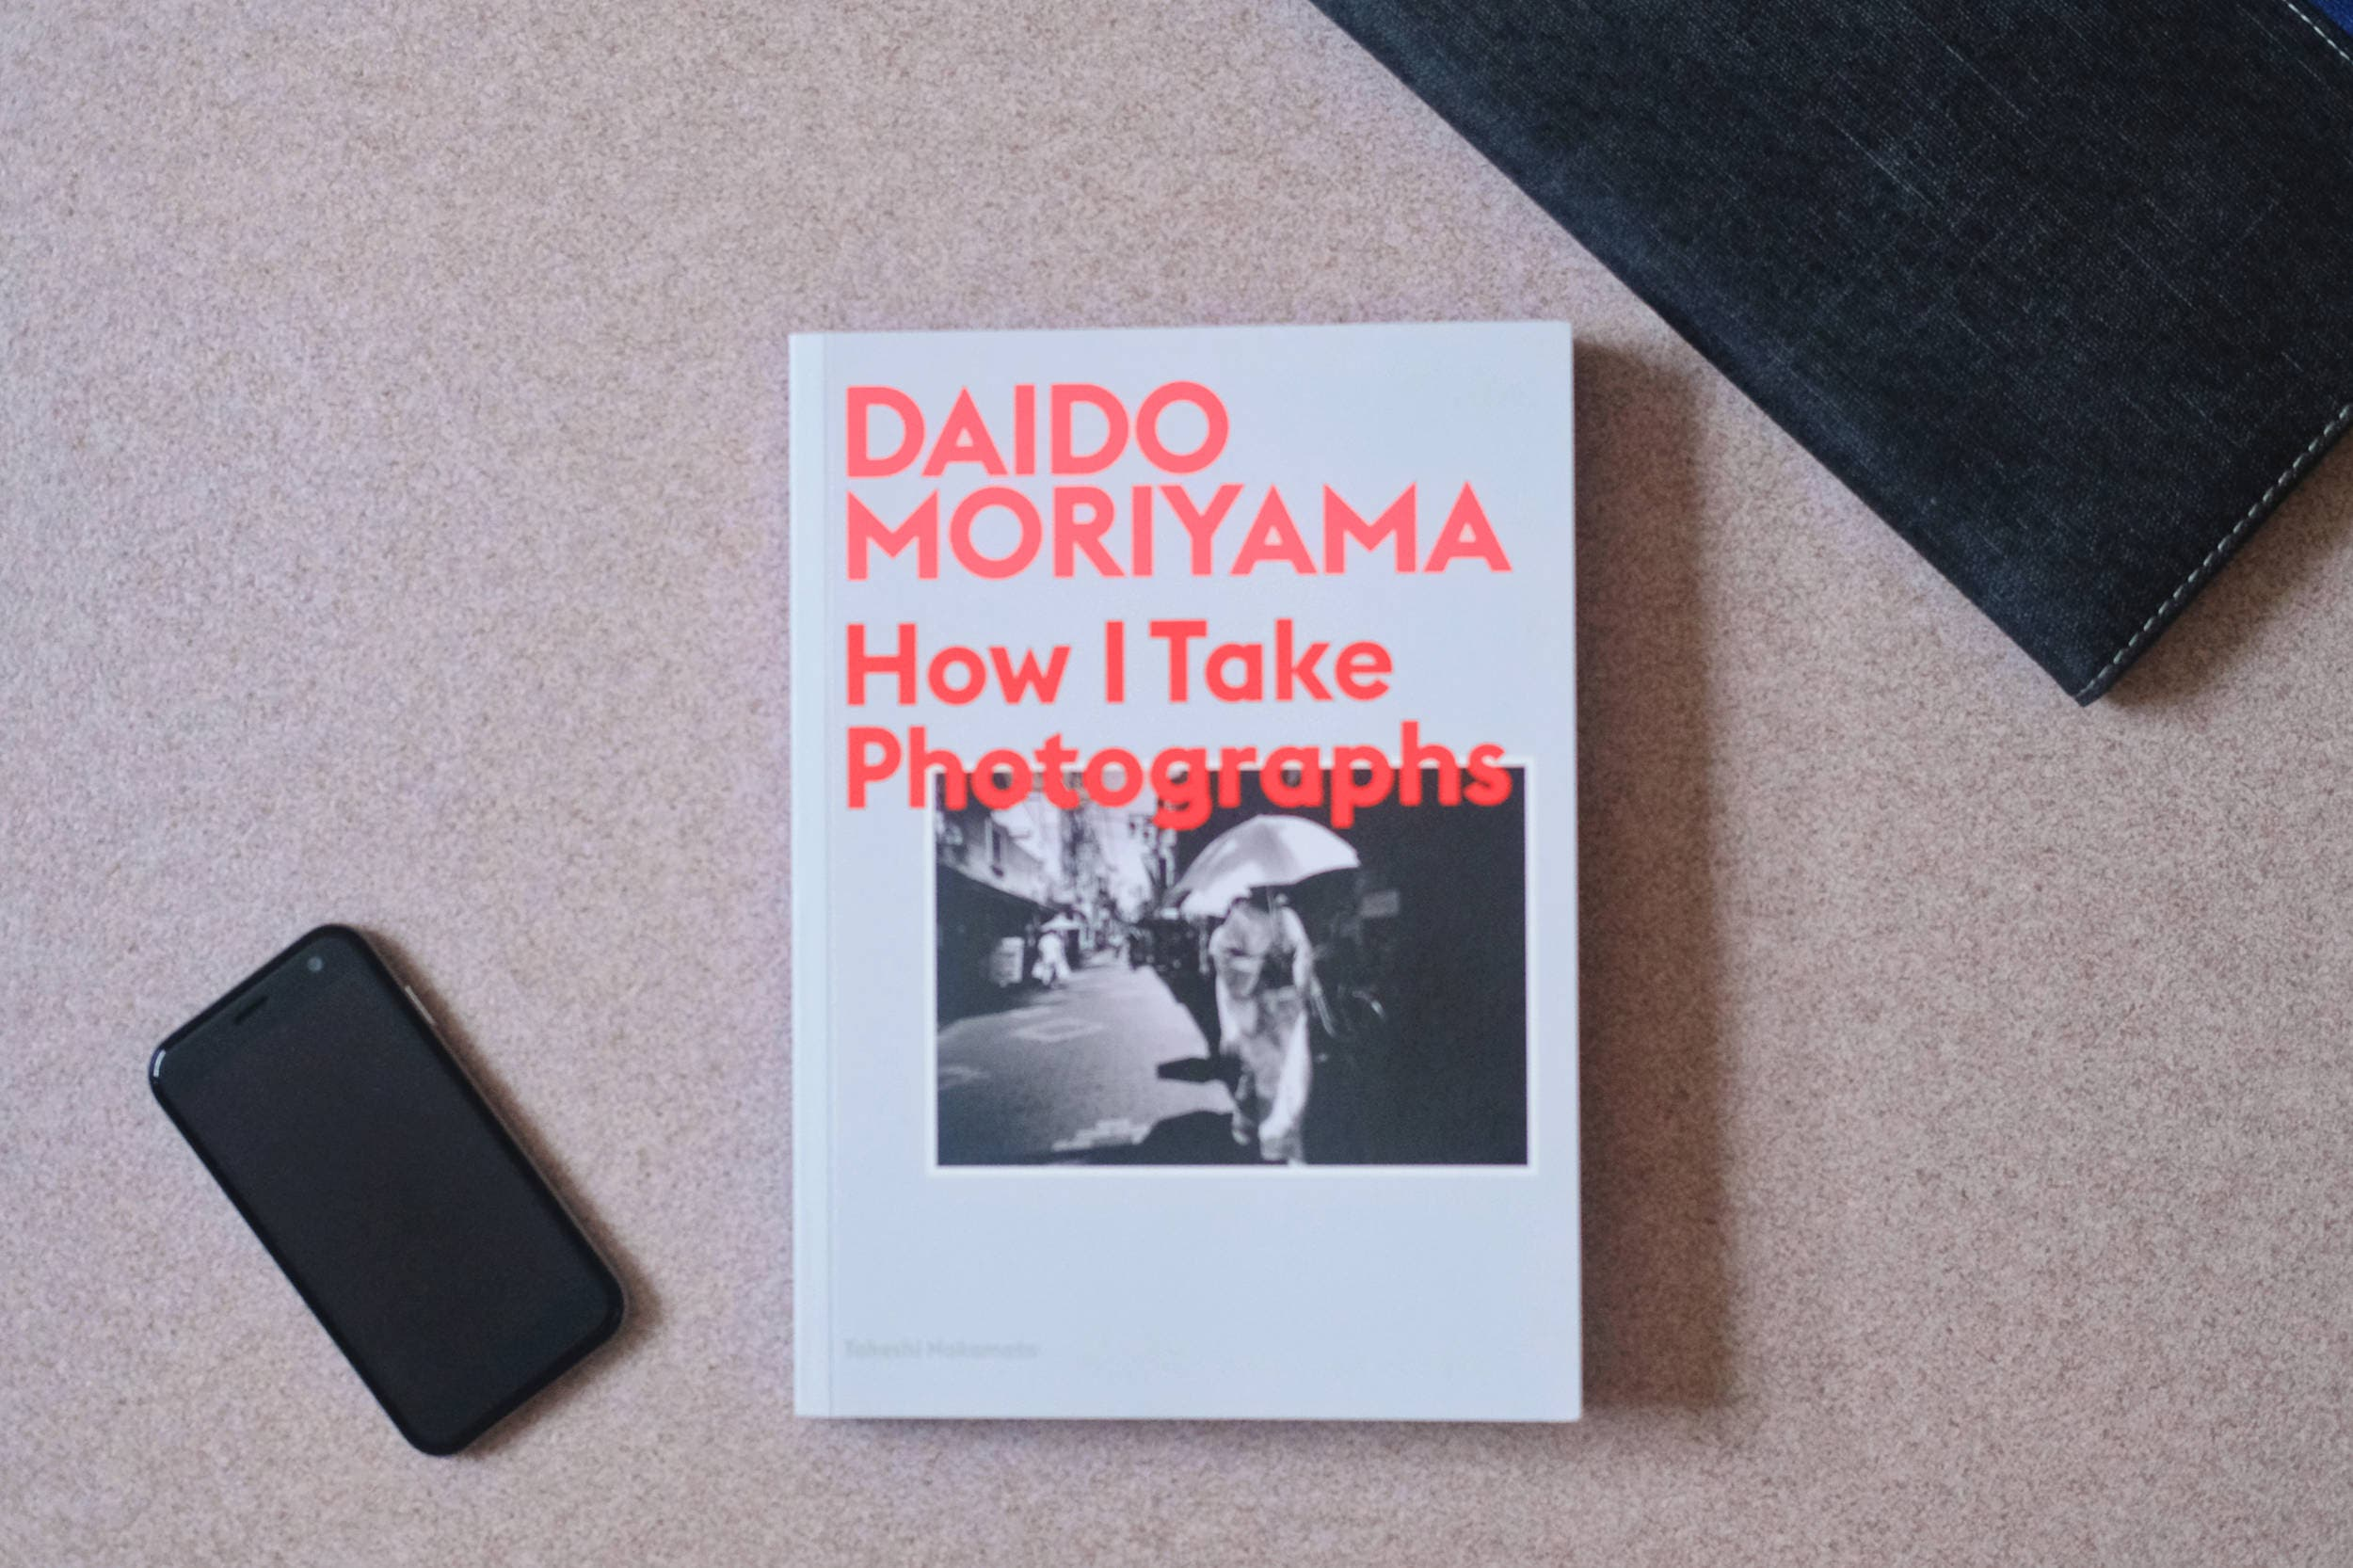 Book Review: Daido Moriyama How I Take Photographs